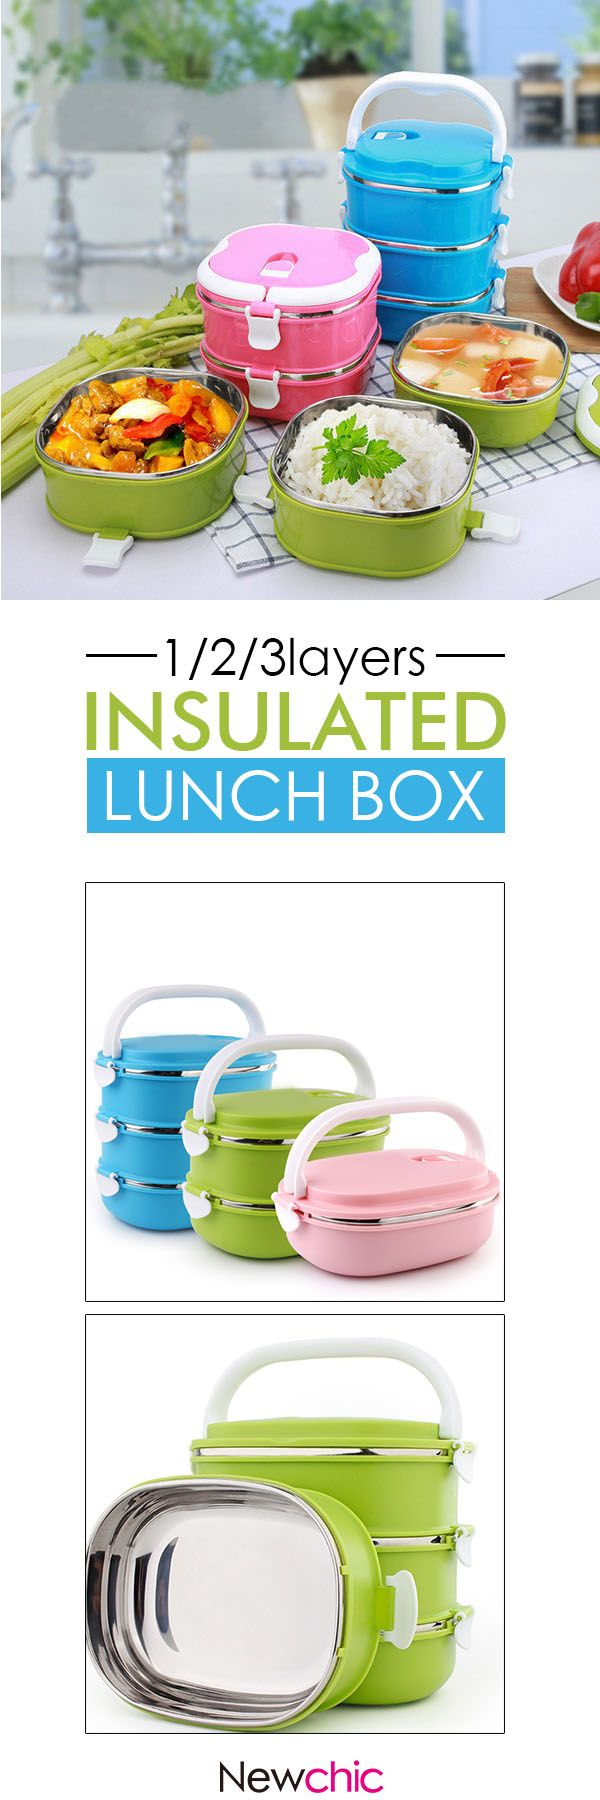 US$7.85 - 1/2/3layers Stainless Steel Insulated Lunch Box Rectangular Student Dinnerware Sets